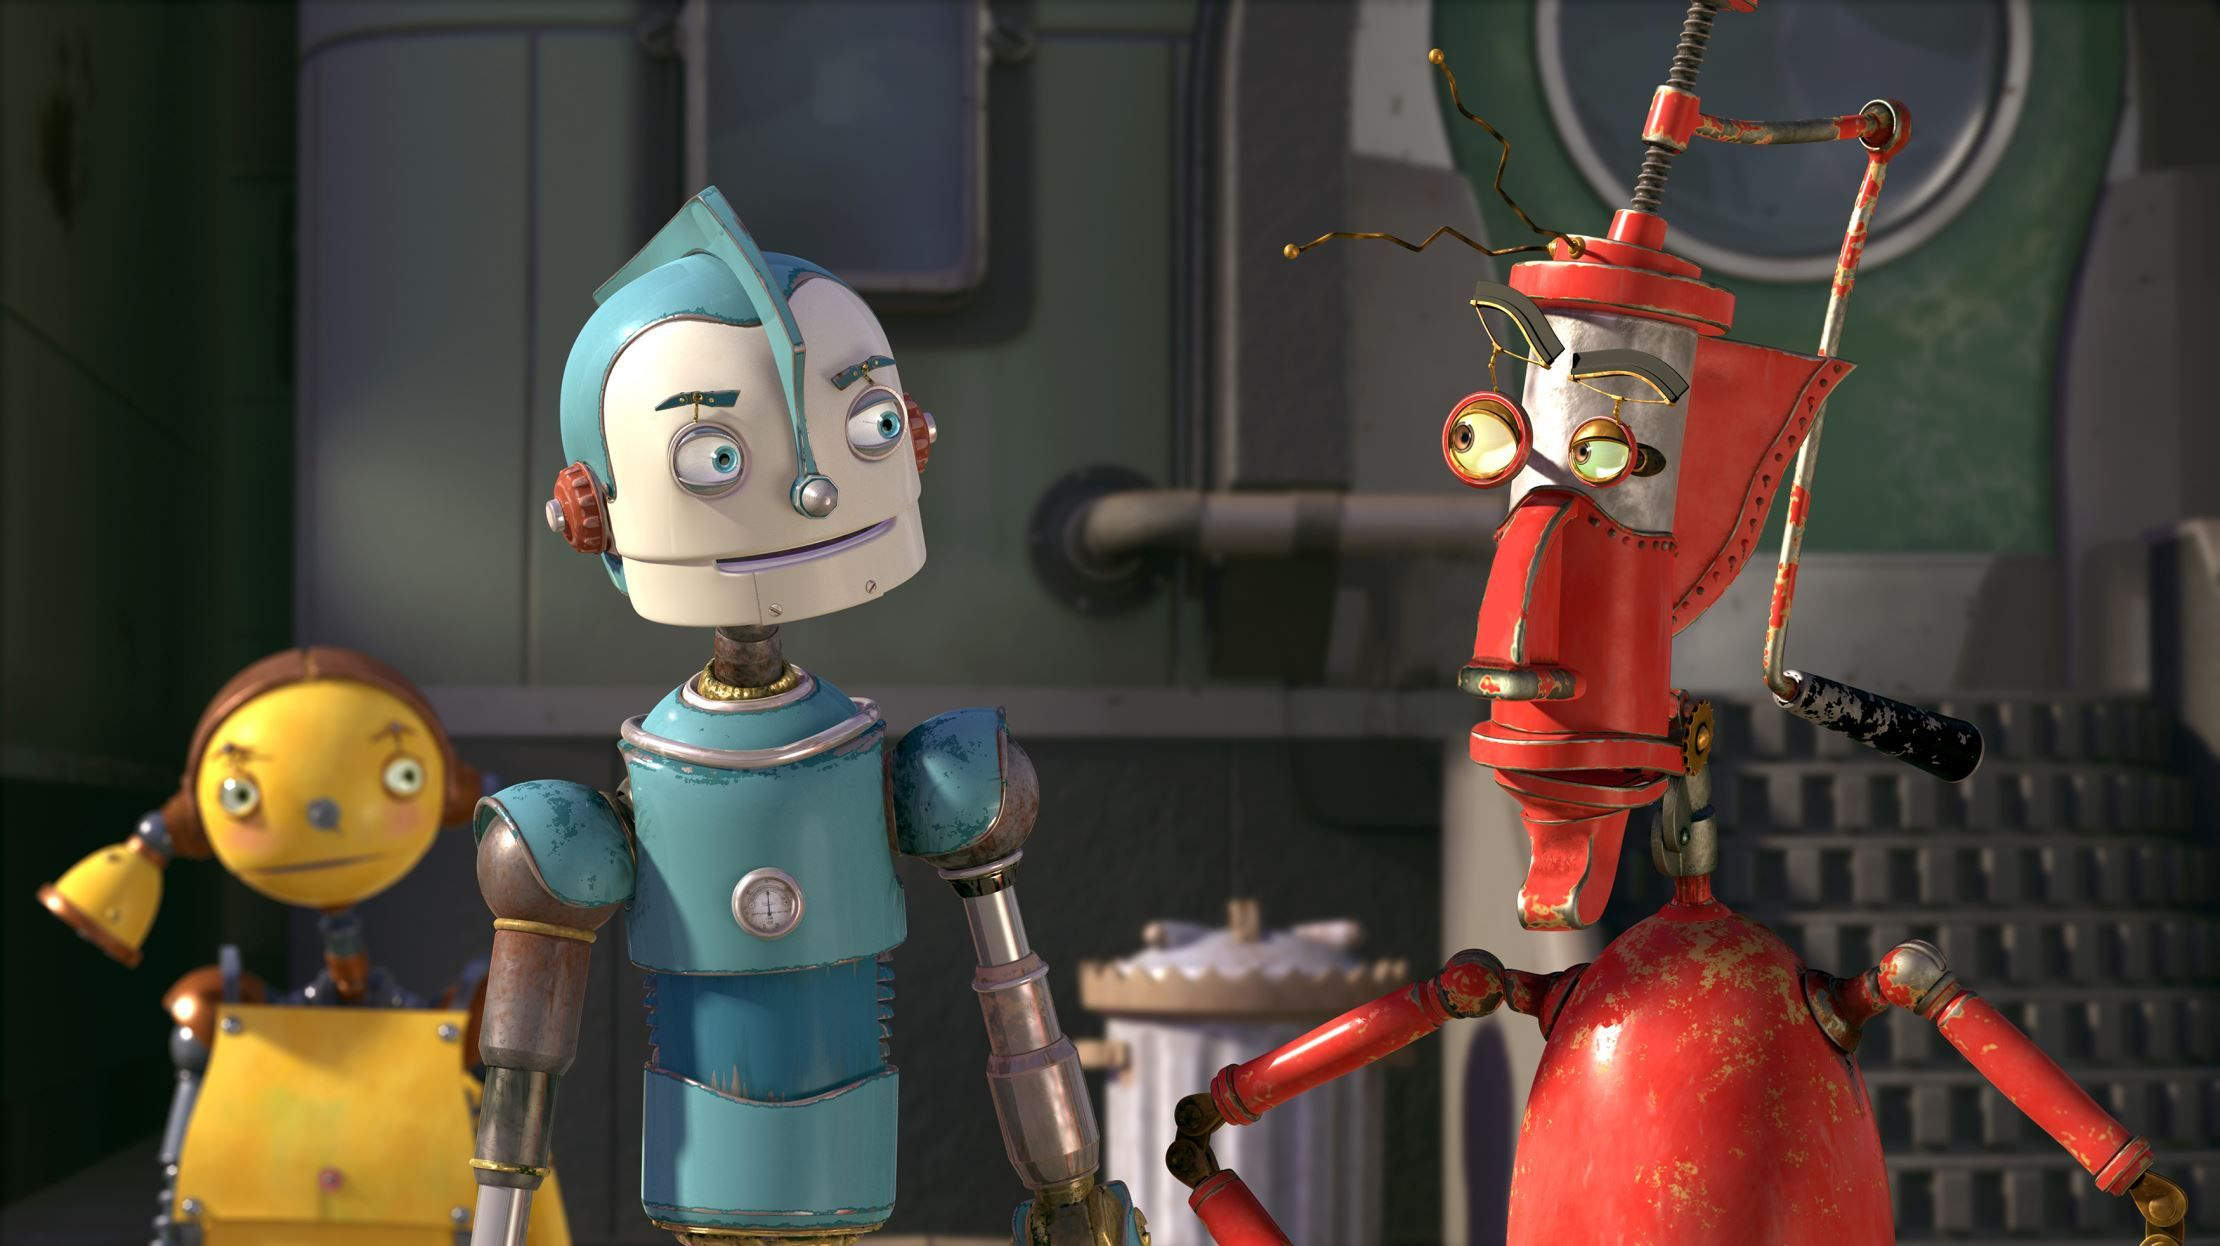 These Animated Robots Have Taken Center Stage On The Silver Screen Robot Picture Animated Movies Disney Animated Movies